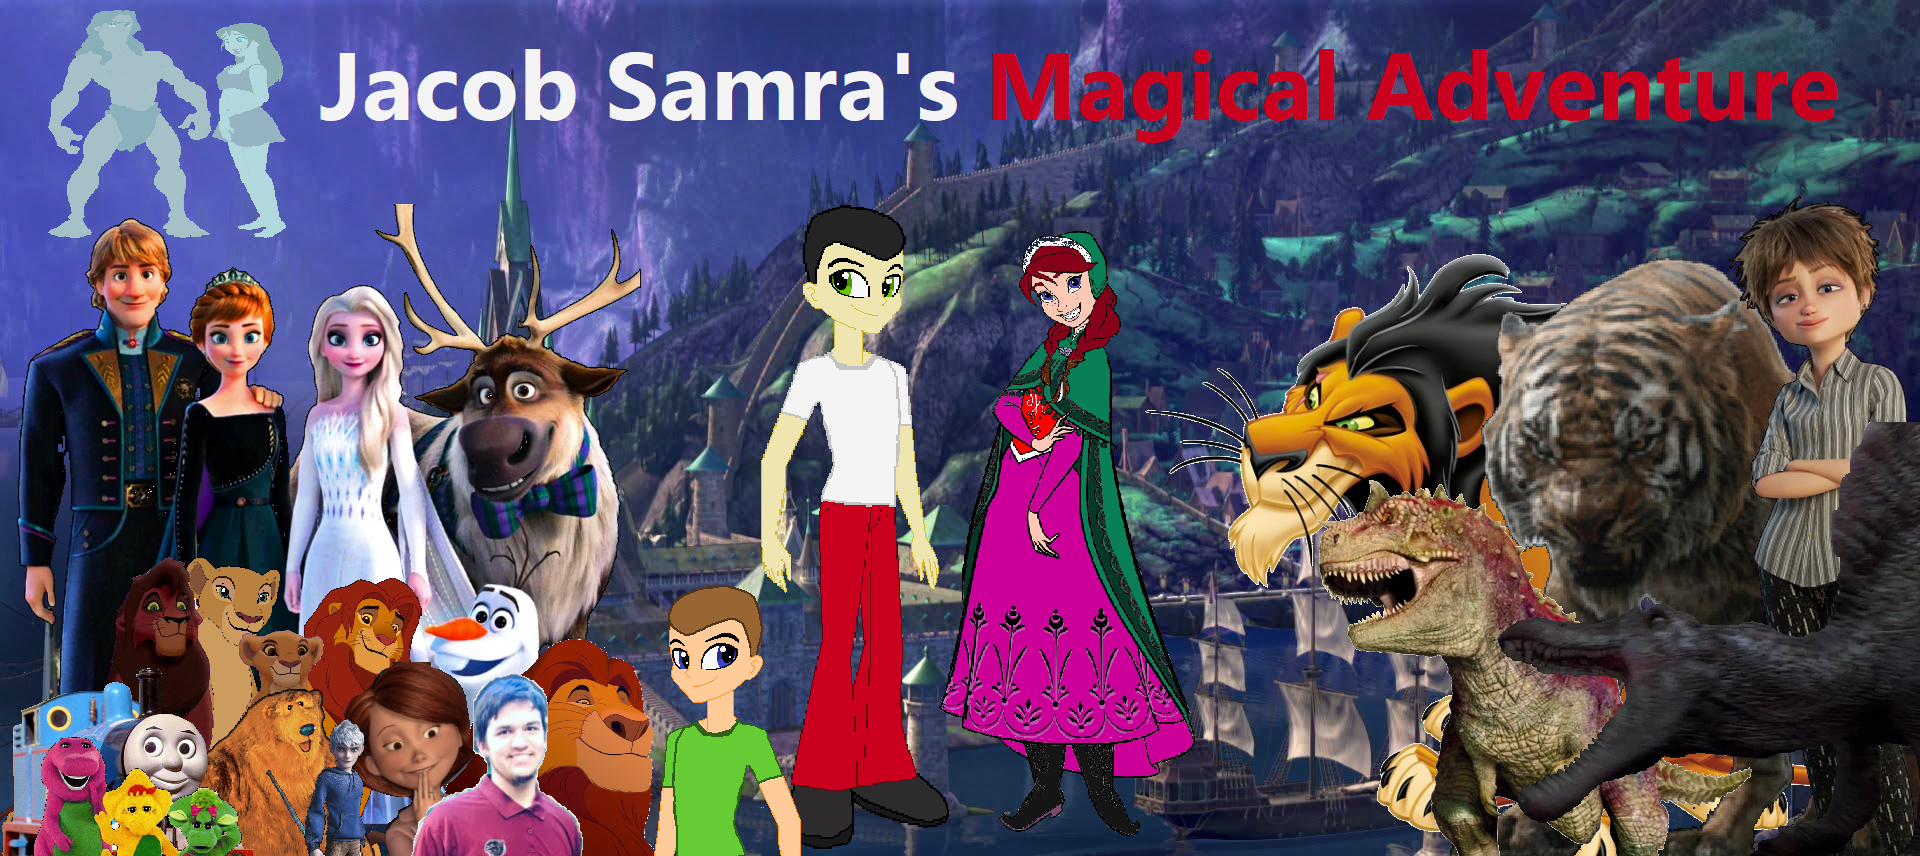 Jacob Samra's Magical Adventure